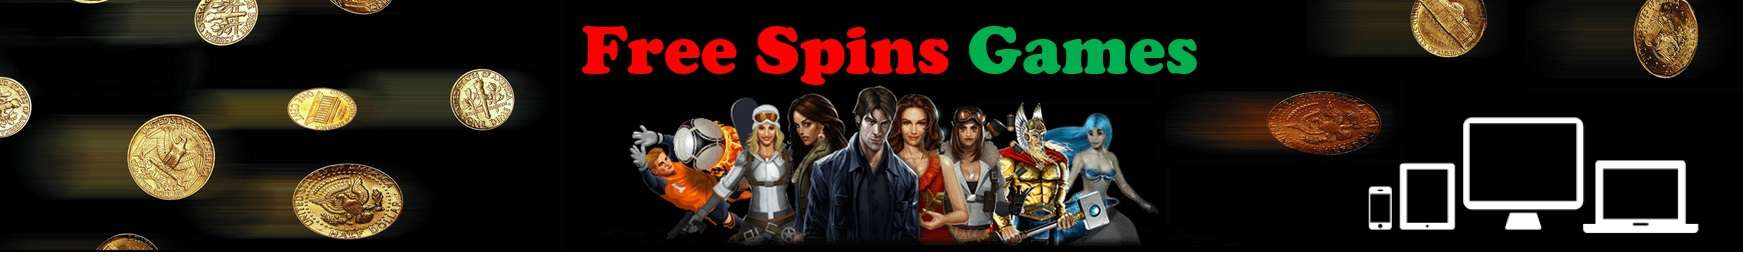 Free spins ignition casino